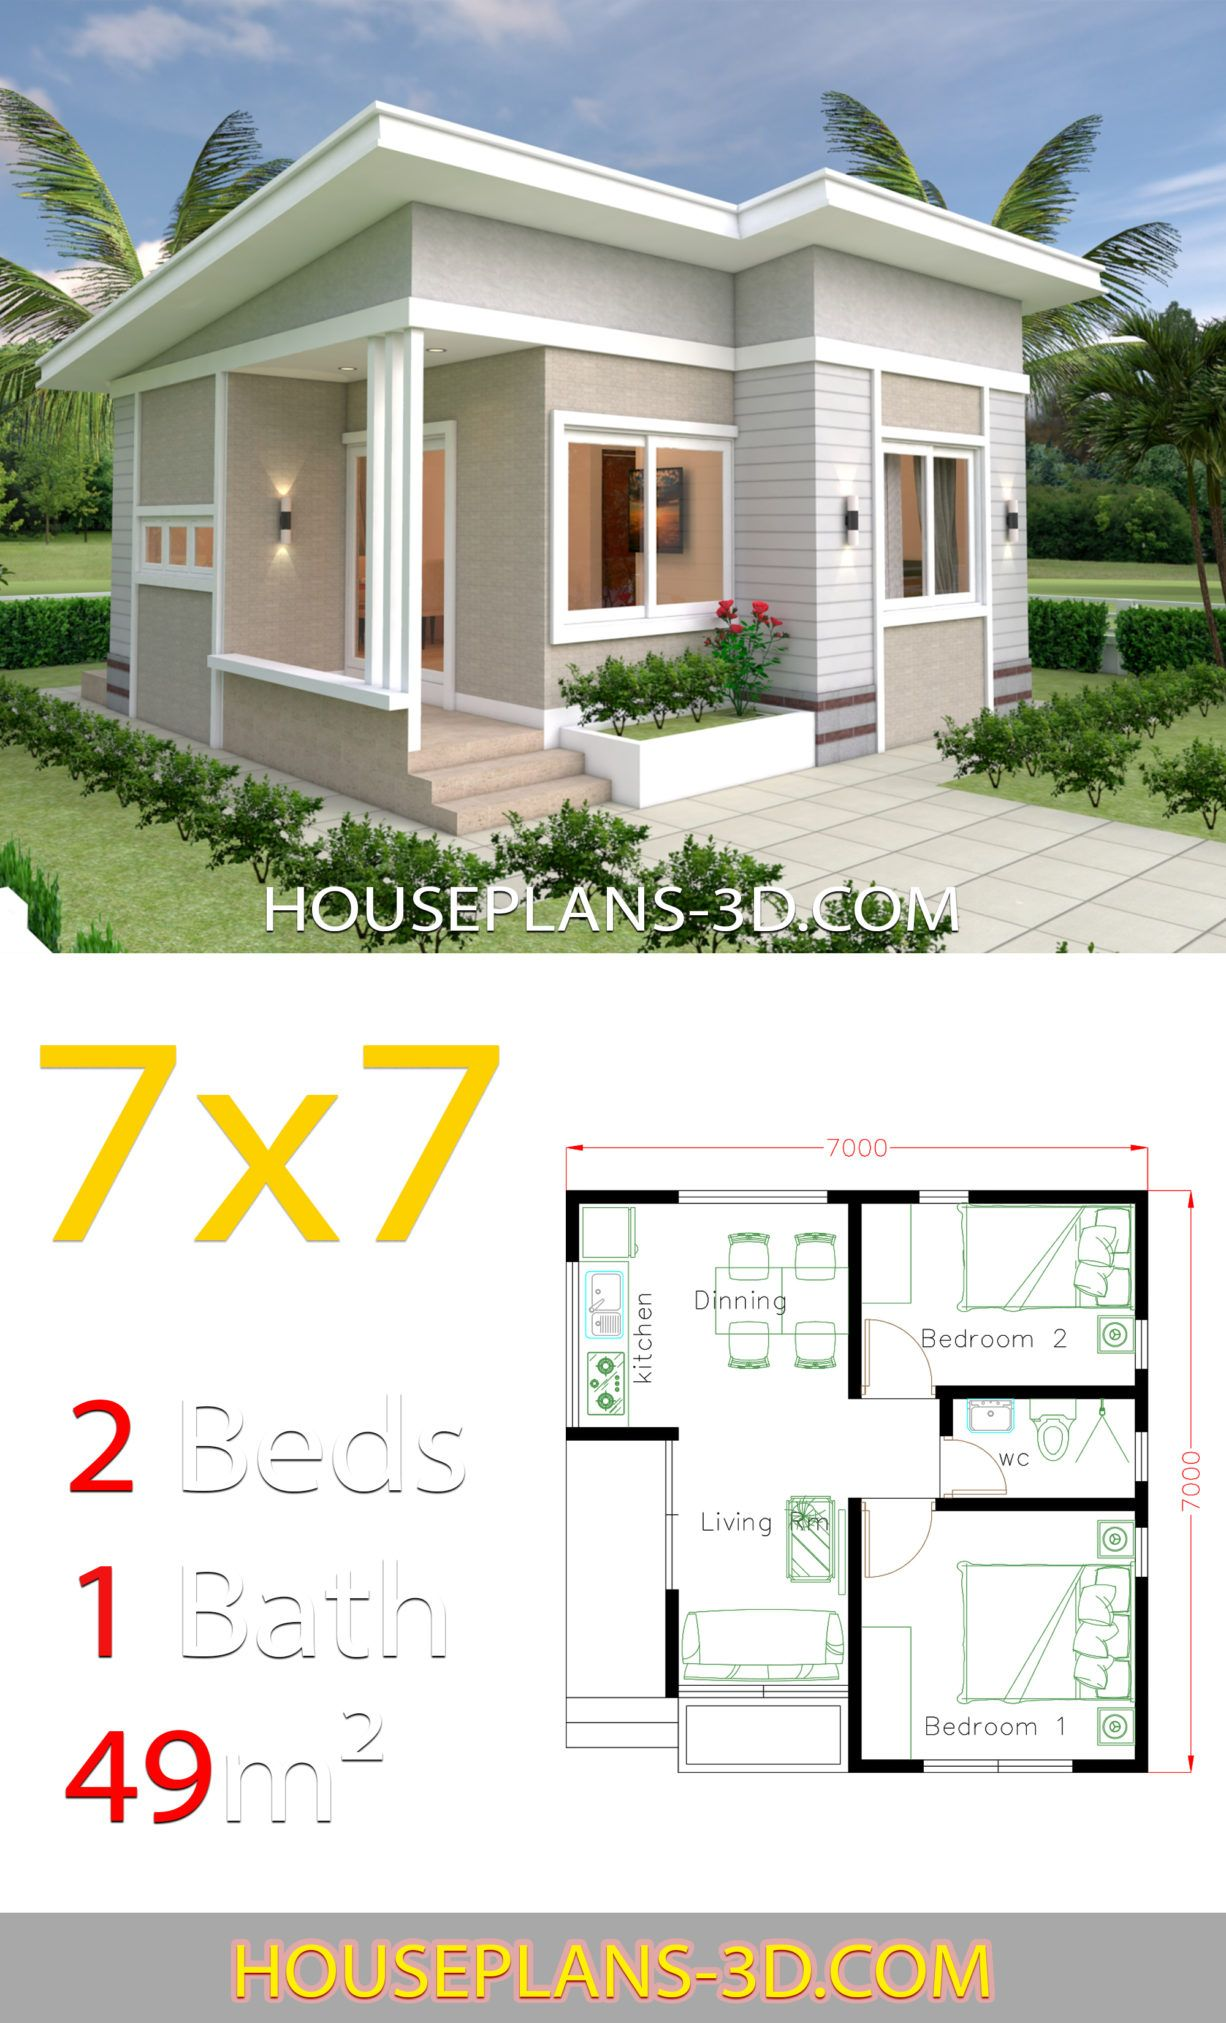 Small House Design 7x7 With 2 Bedrooms House Plans 3d Small House Design Plans House Plans Small House Layout